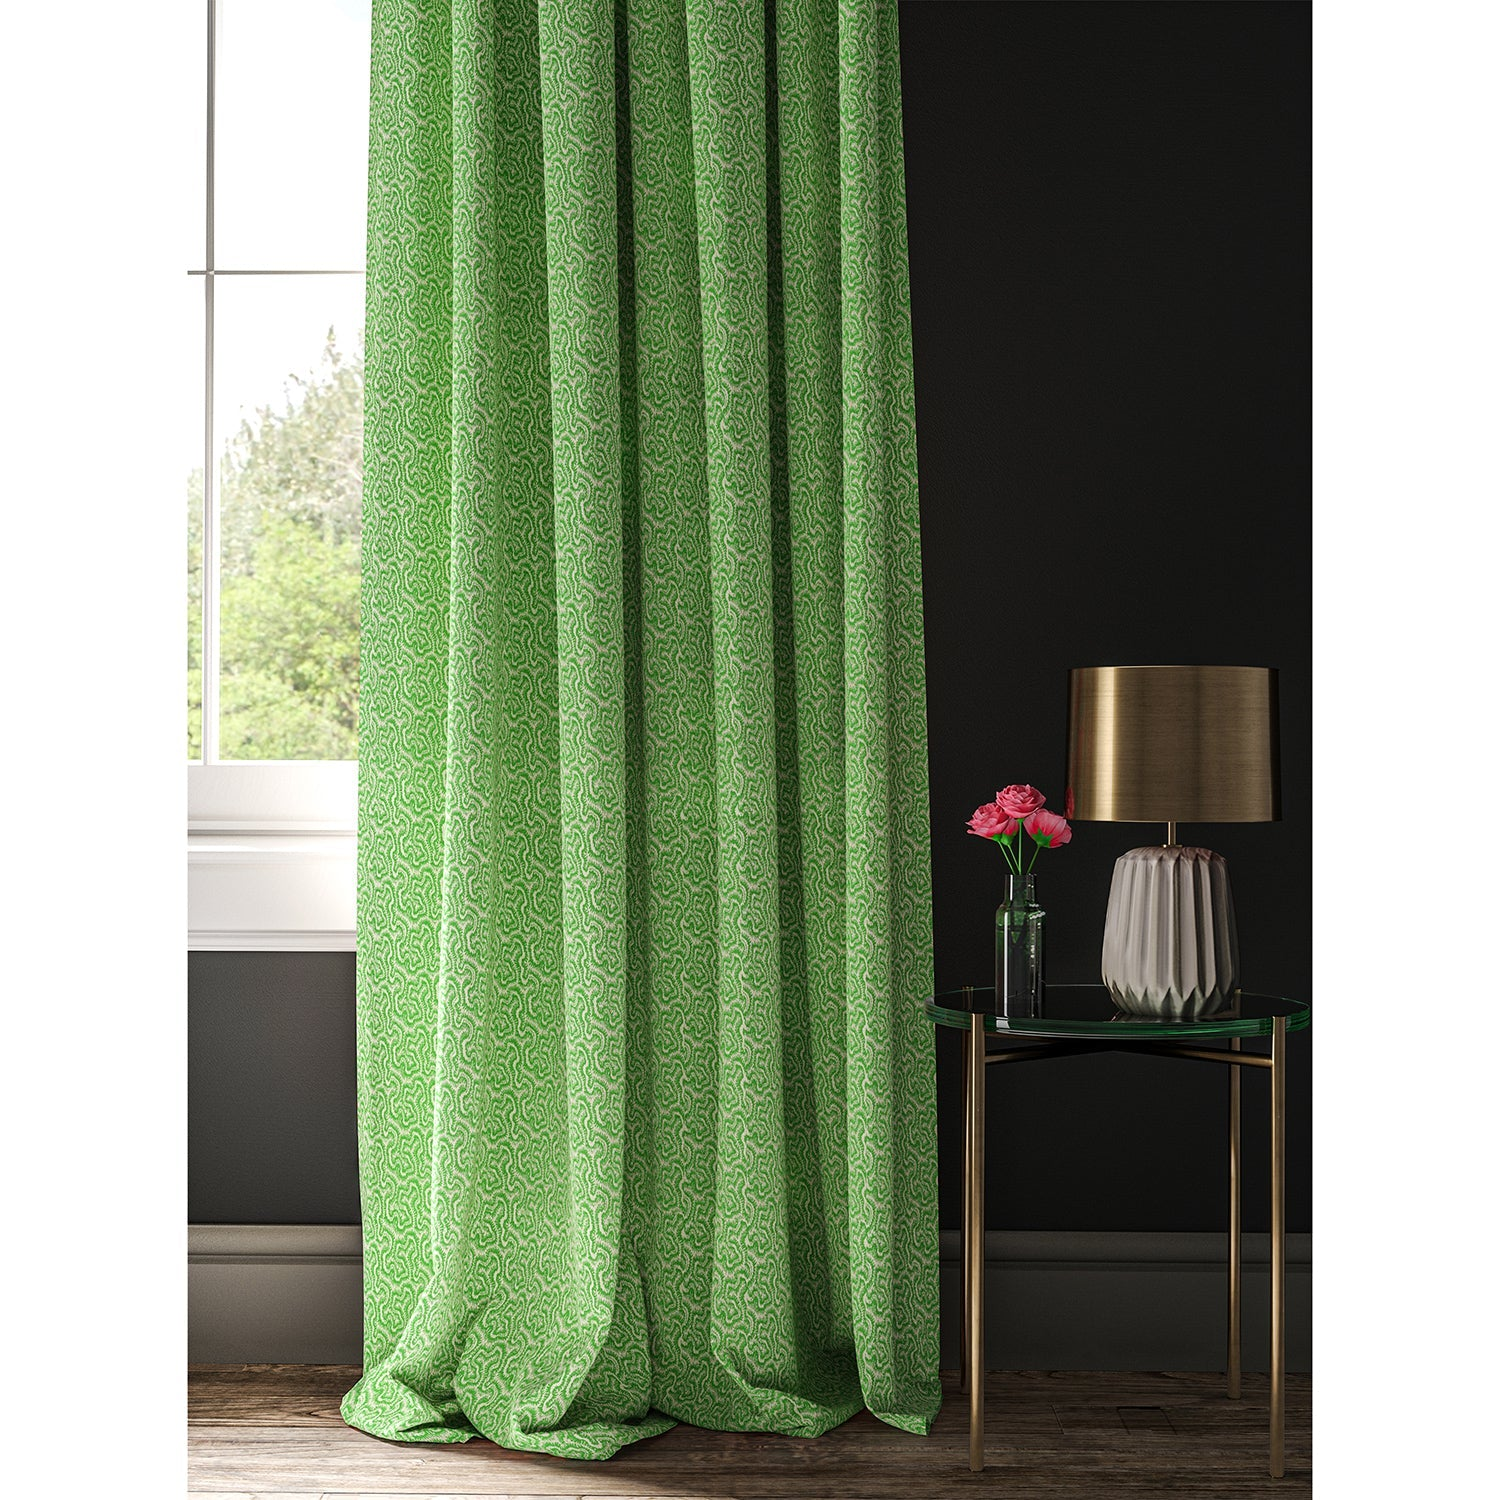 Curtain made with a green and white wavy weave fabric.